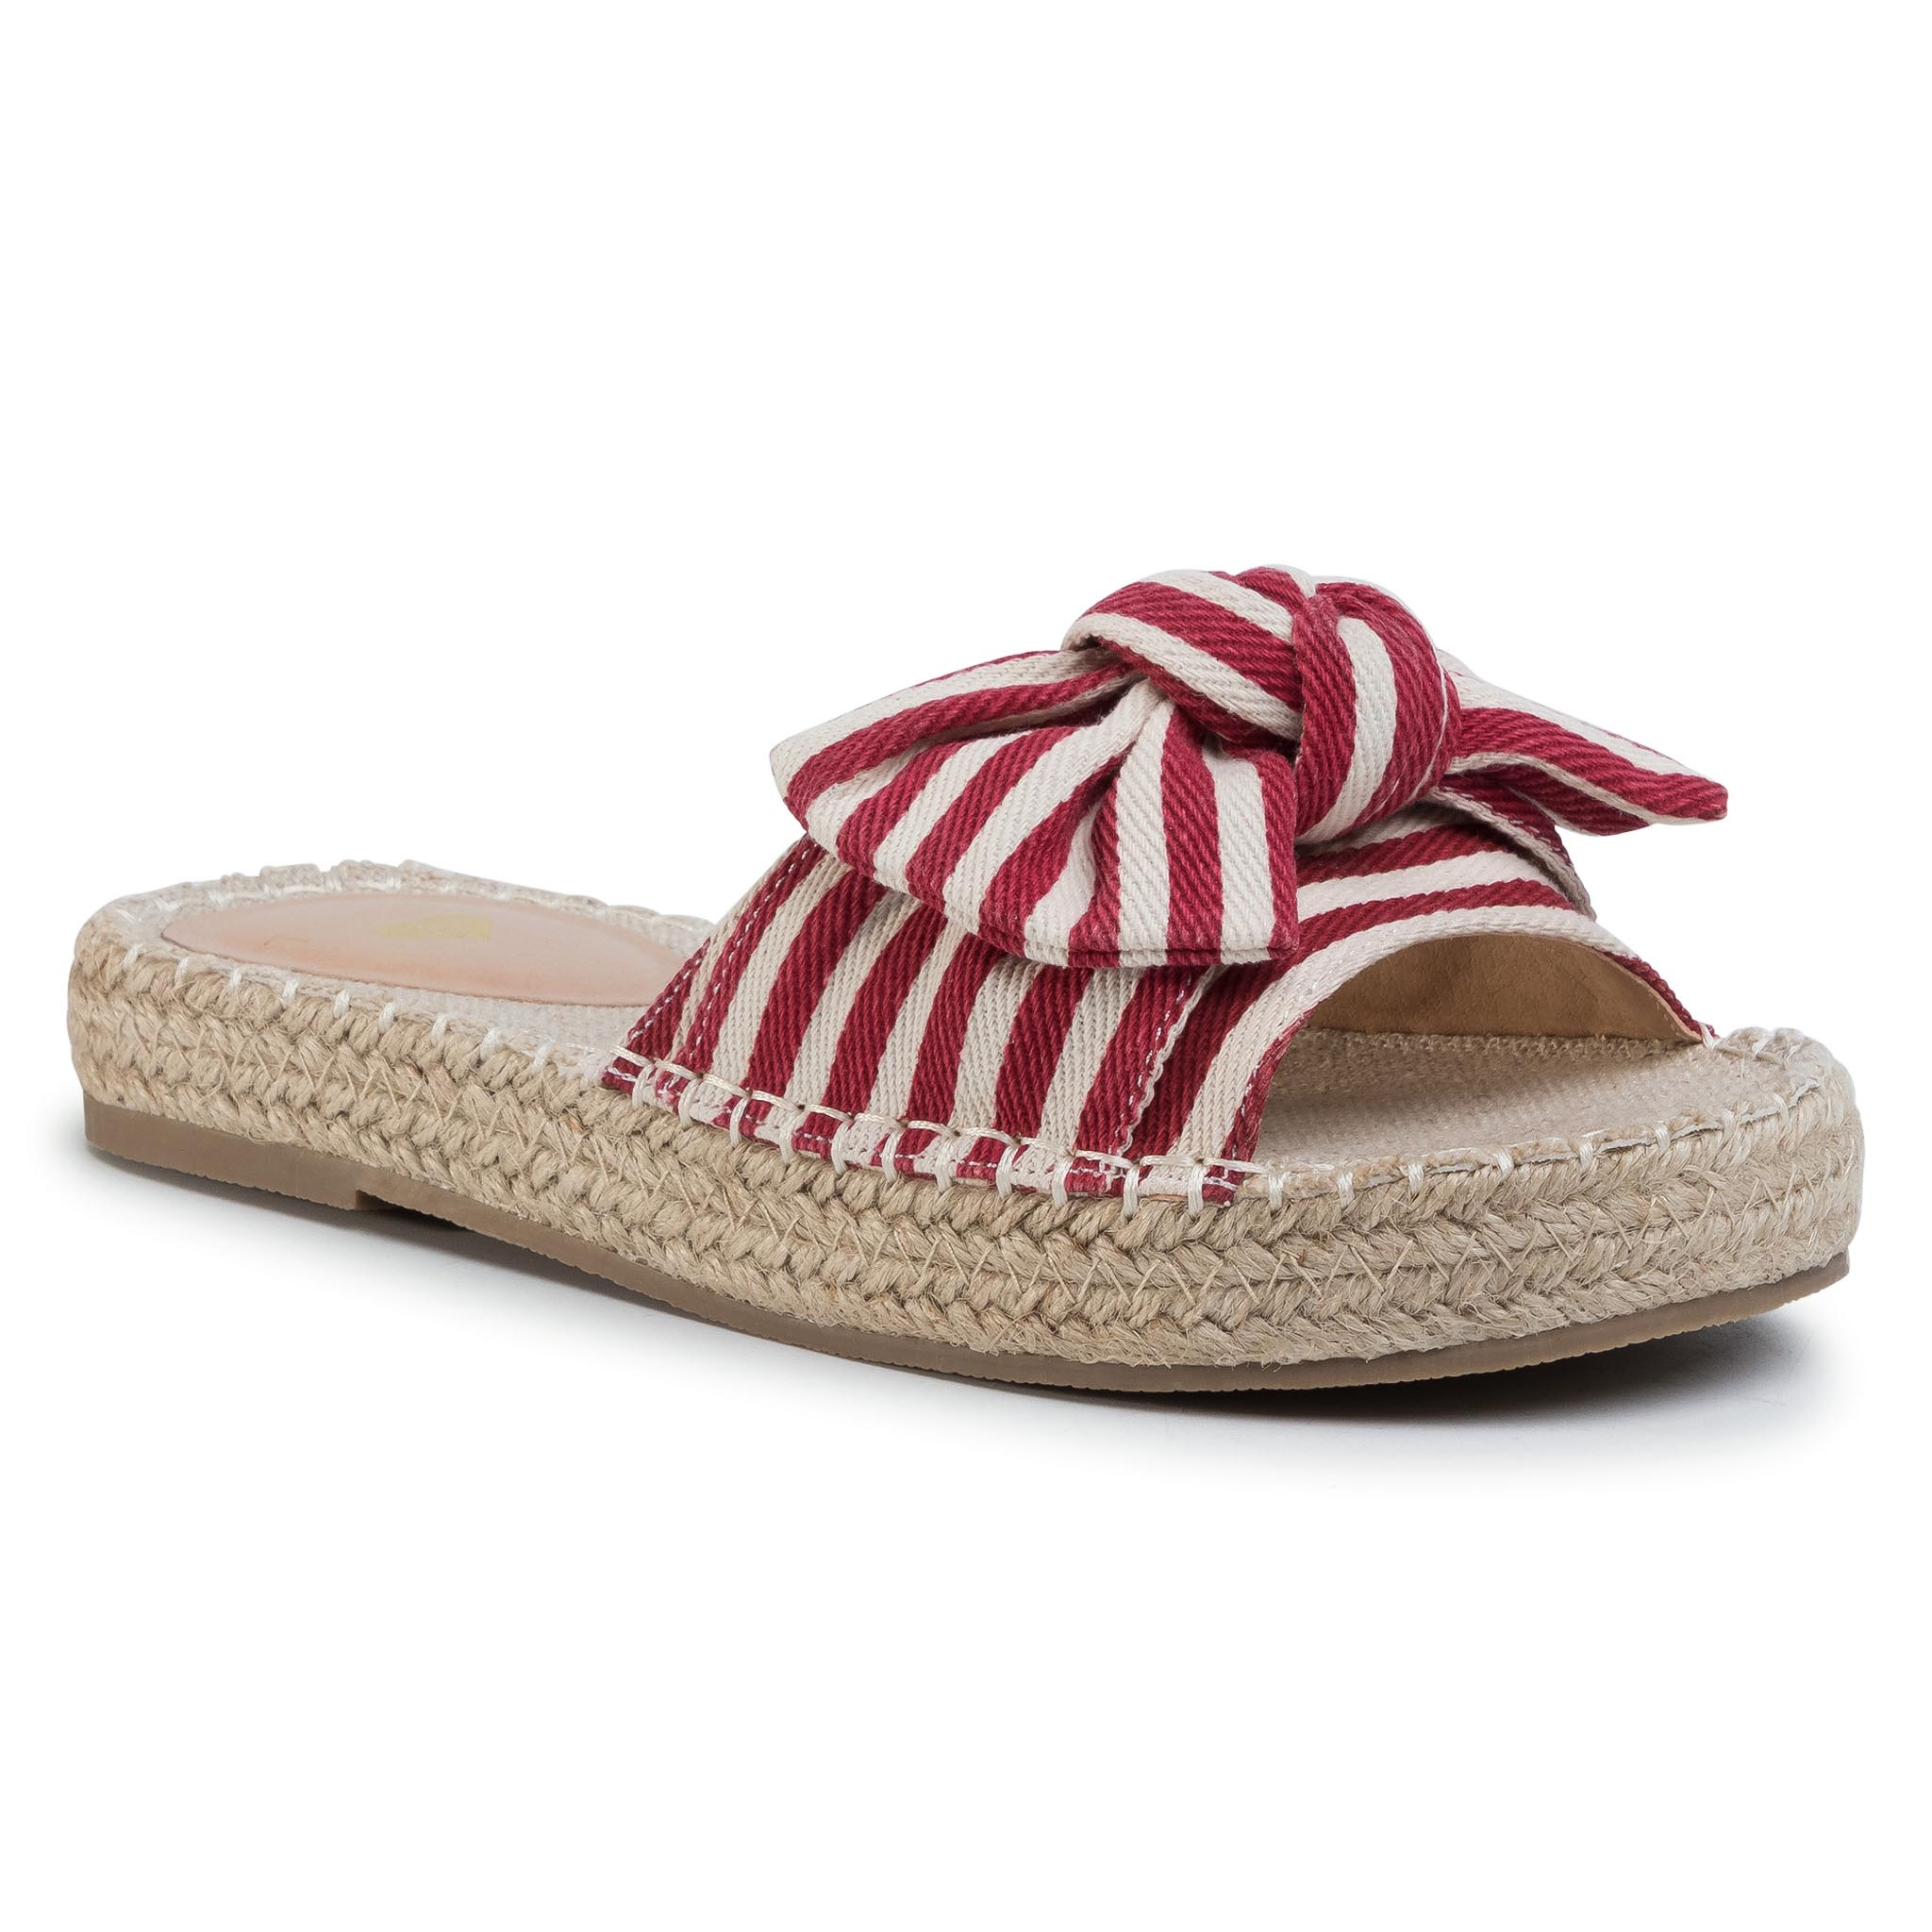 Image of Espadrilles TWINSET - Ciabattina 201LMPZRR Bic.True Red/Ottico 05080